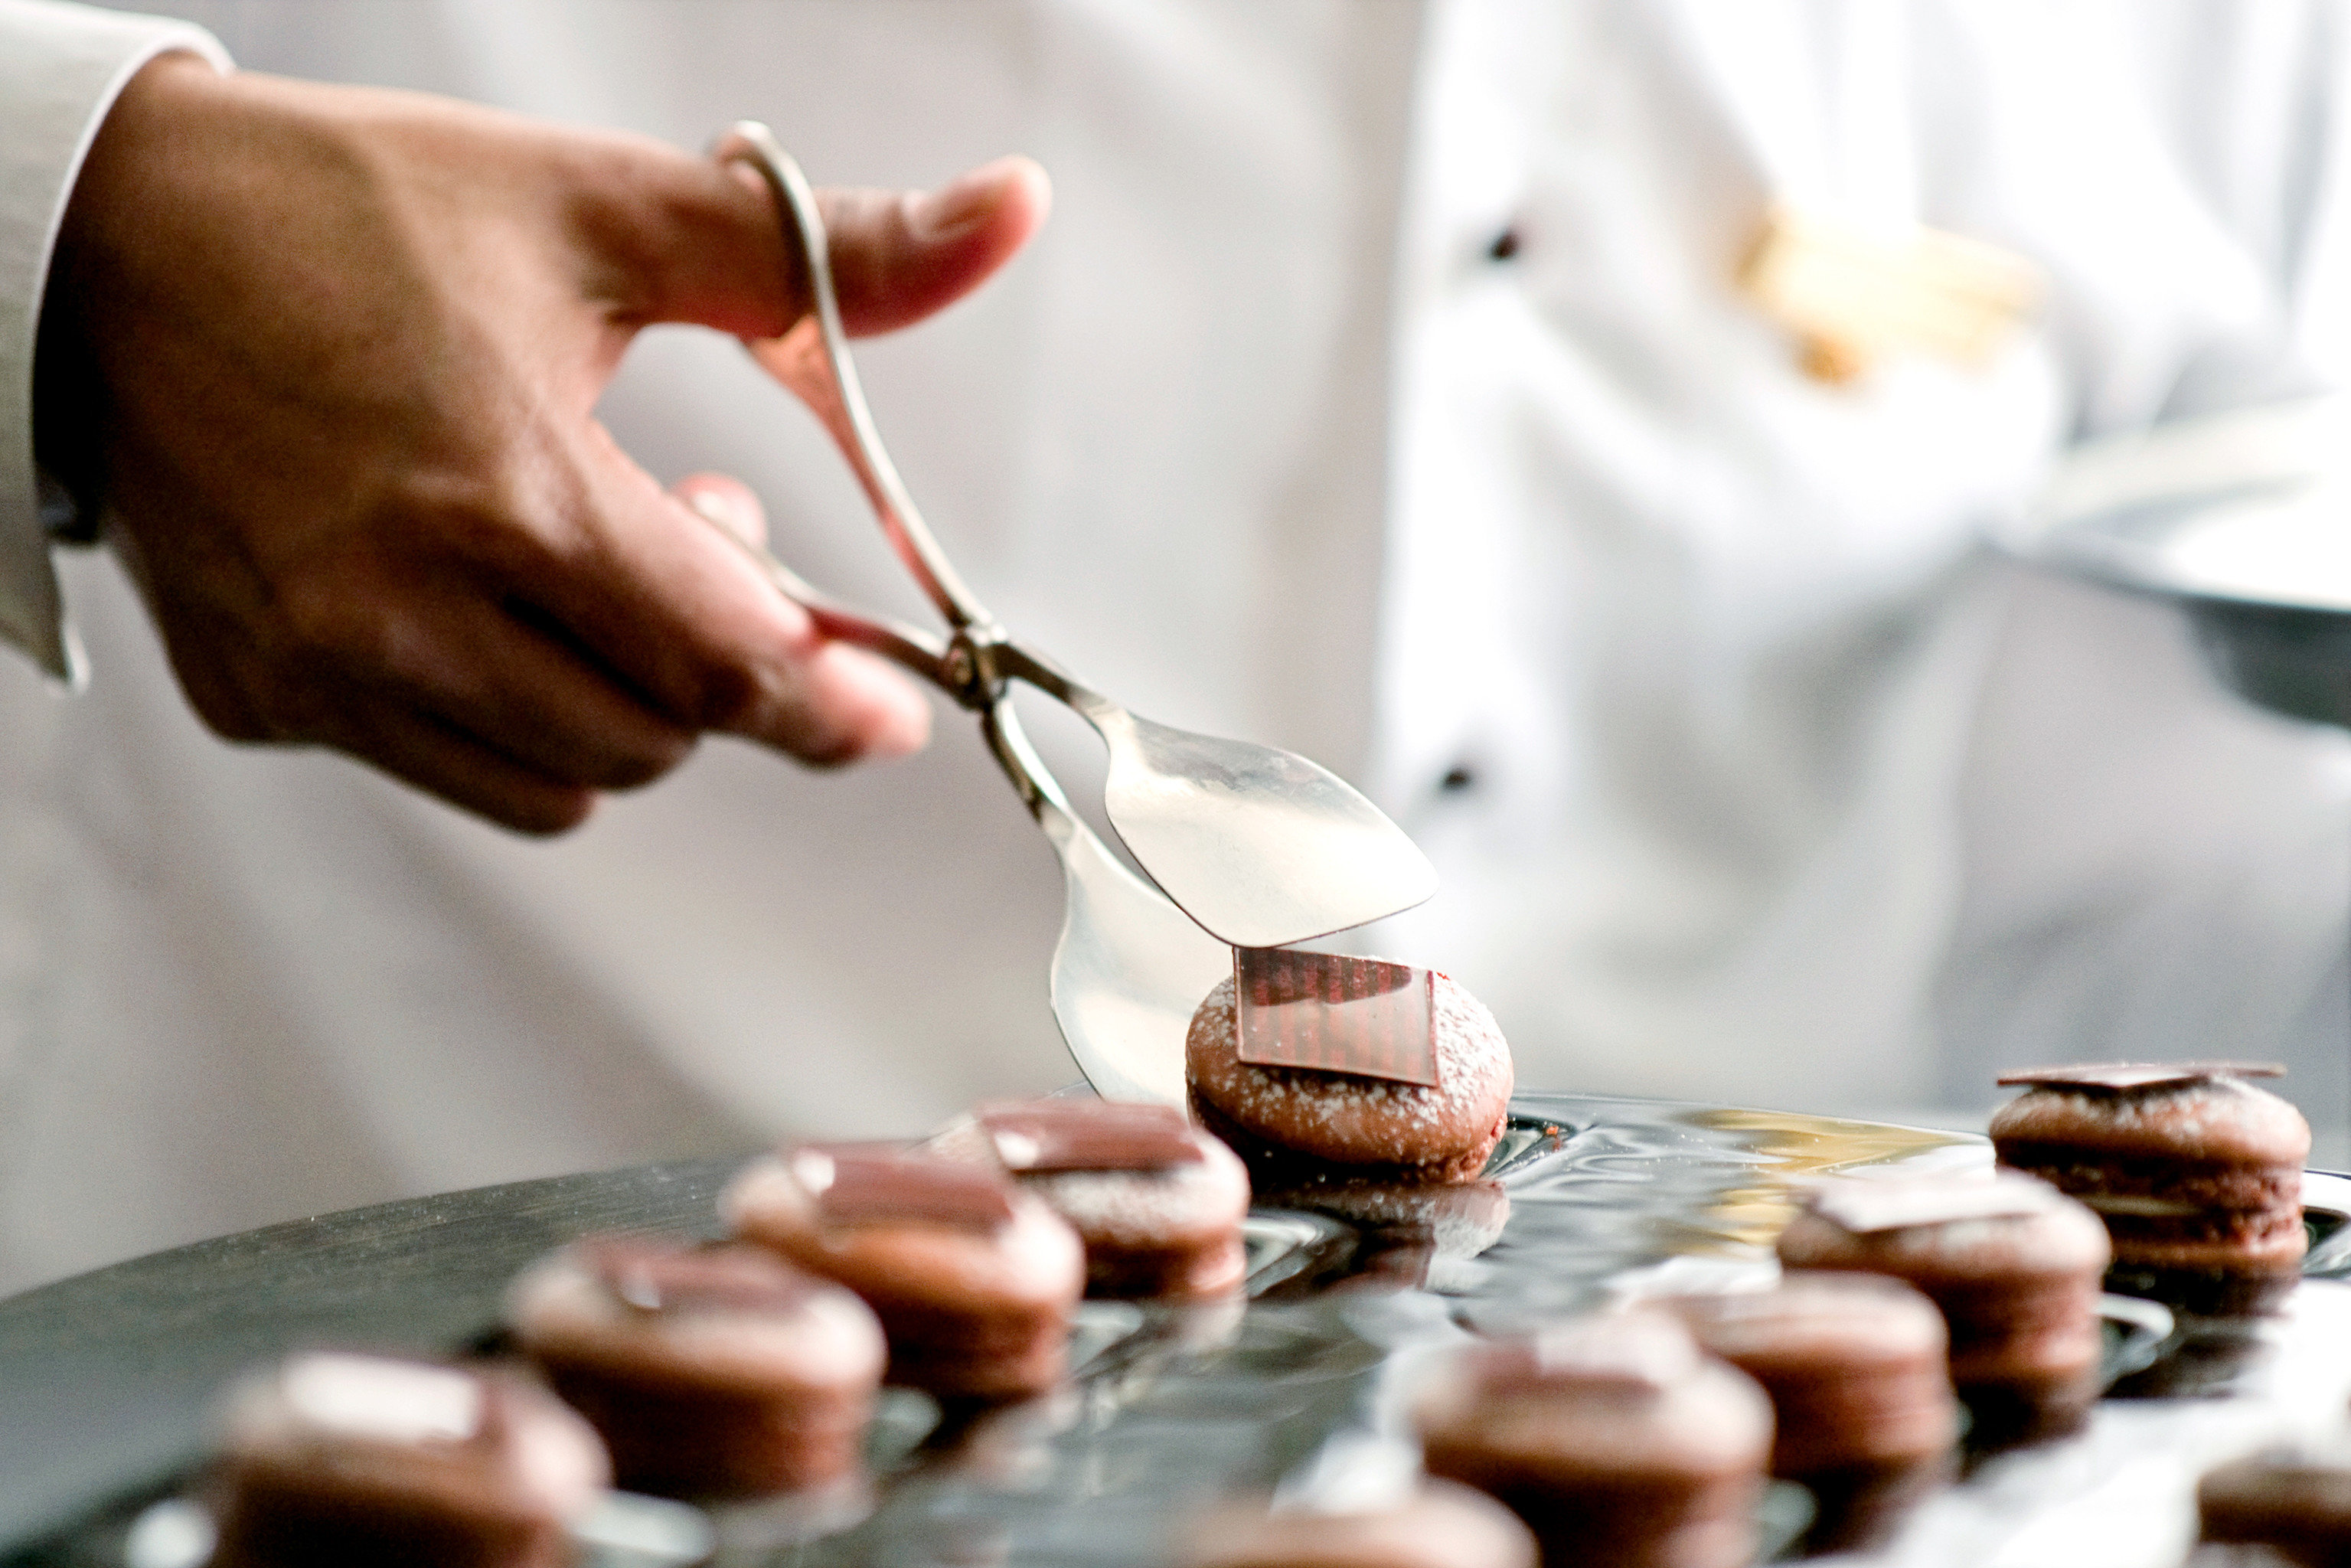 human action food cook dessert baking chocolate cooking sense pastry chef cuisine